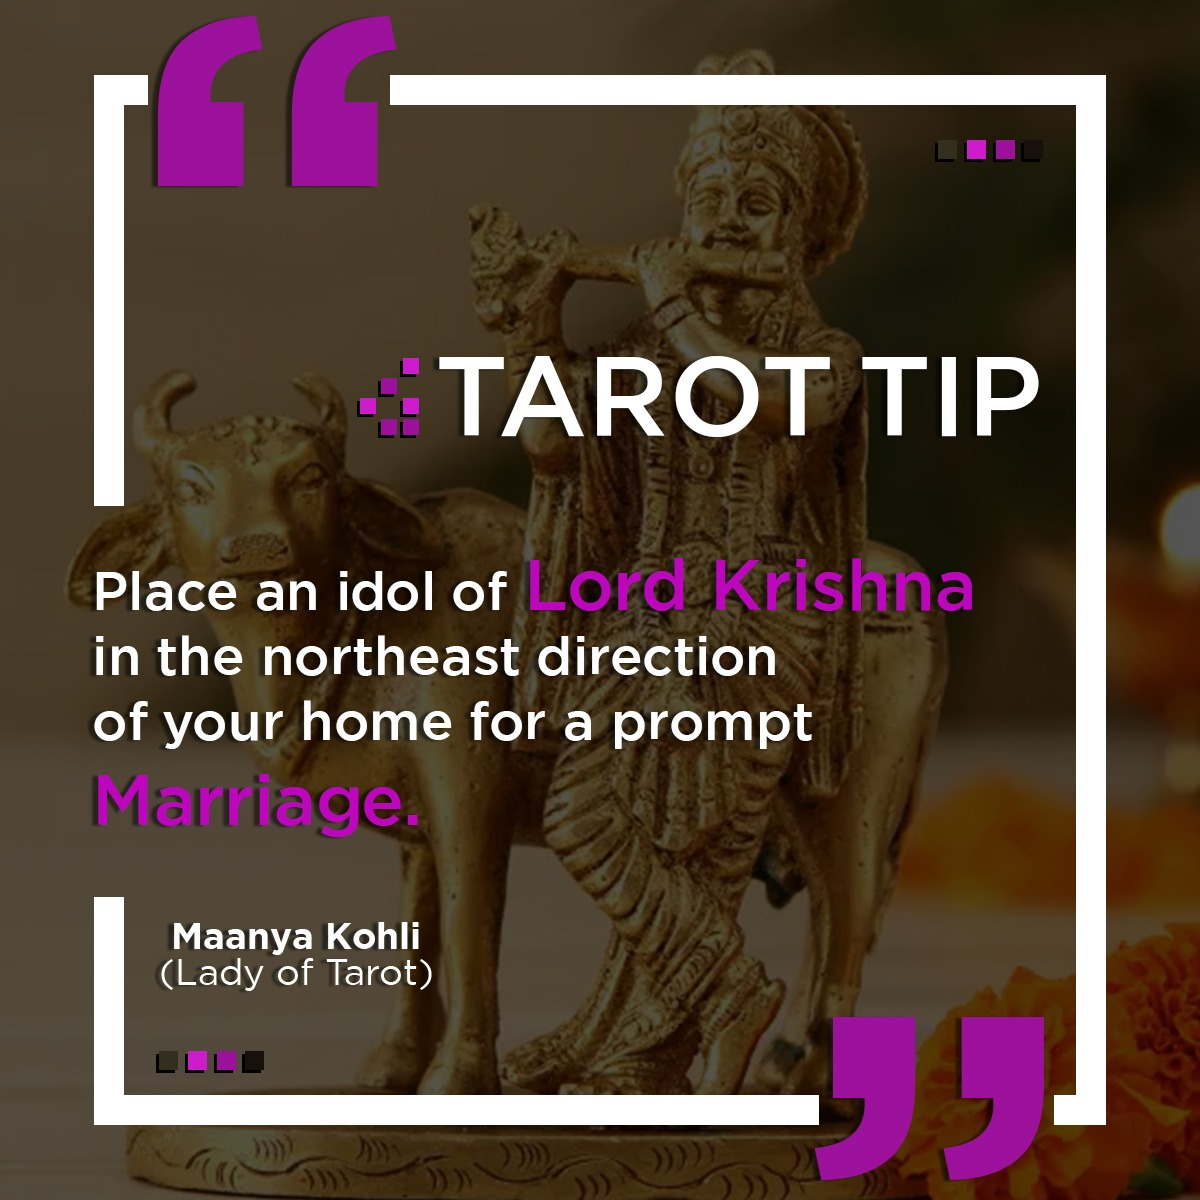 Tarot Tip for a Prompt Marriage.